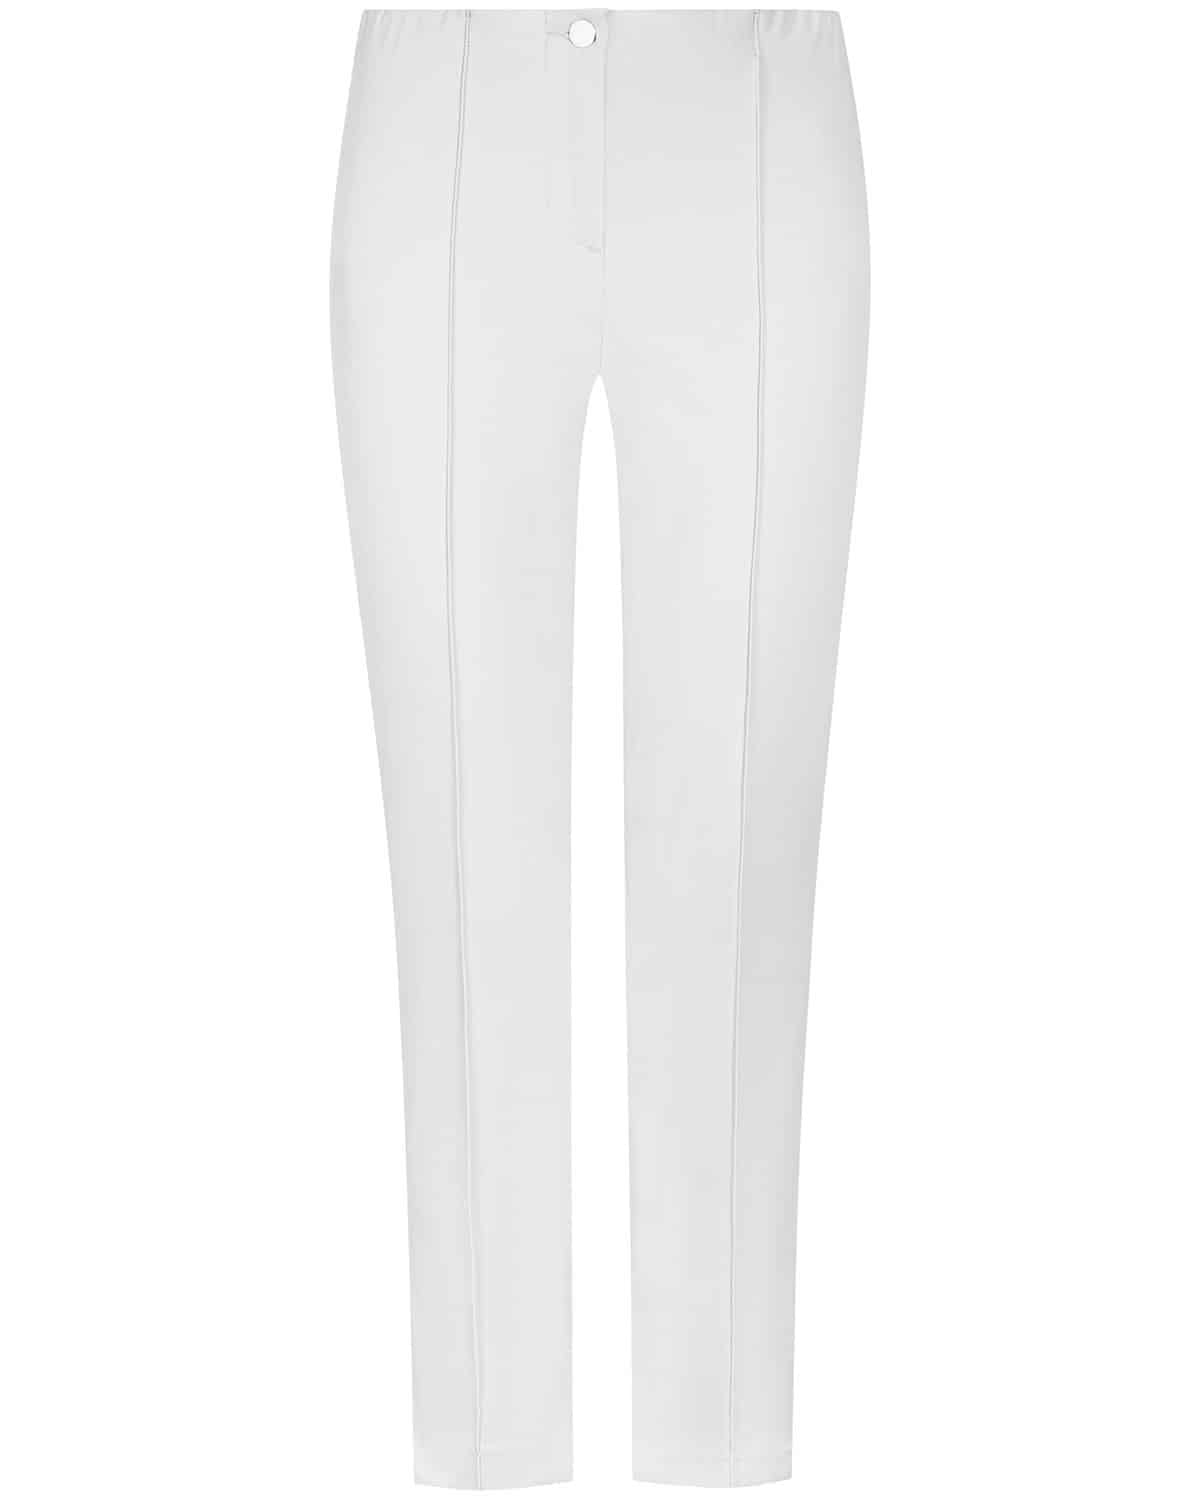 Cambio, Ros Hose, white Pants, Lodenfrey, Munich